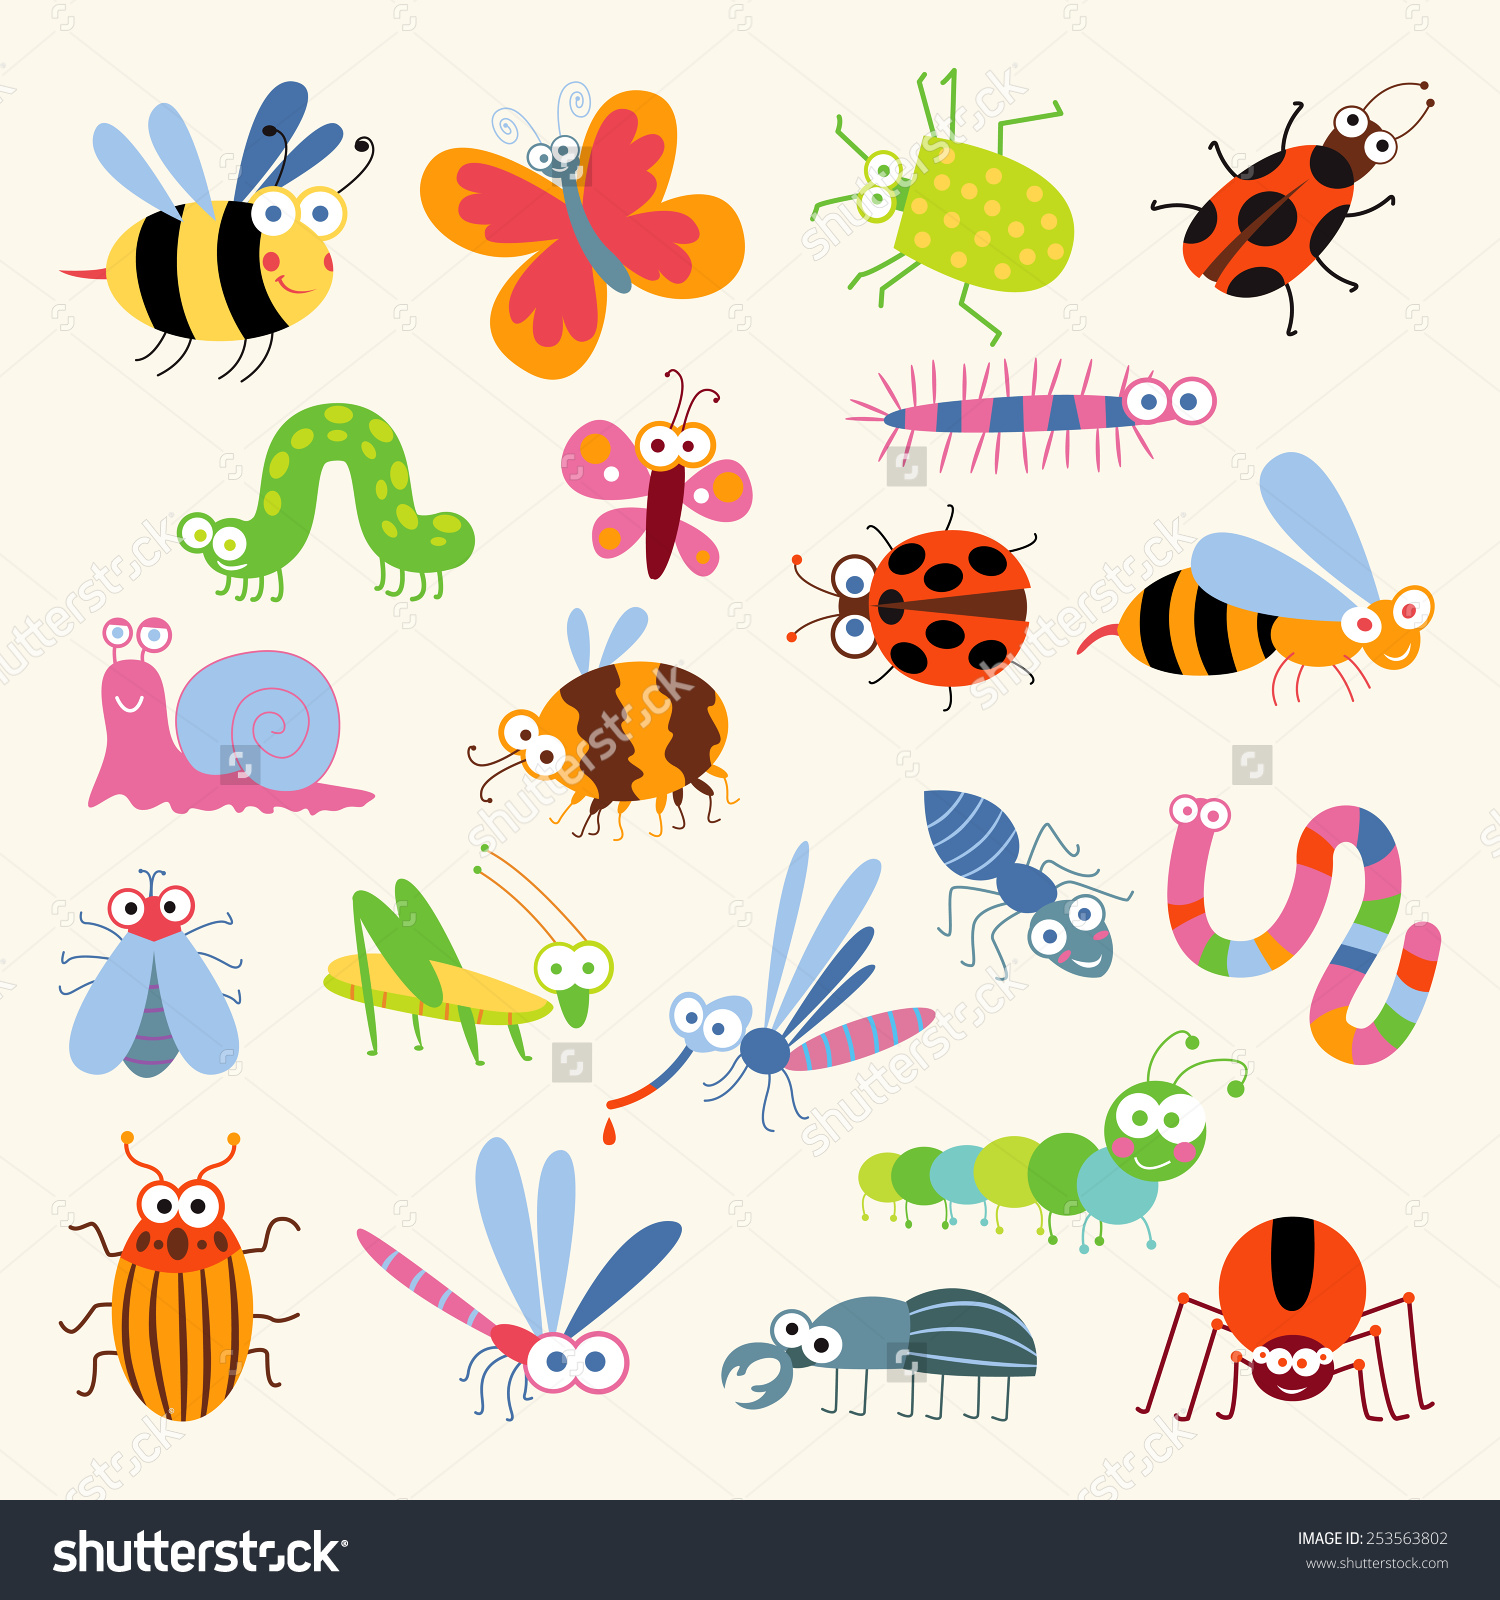 Ant clipart snail Isolated background funny white on